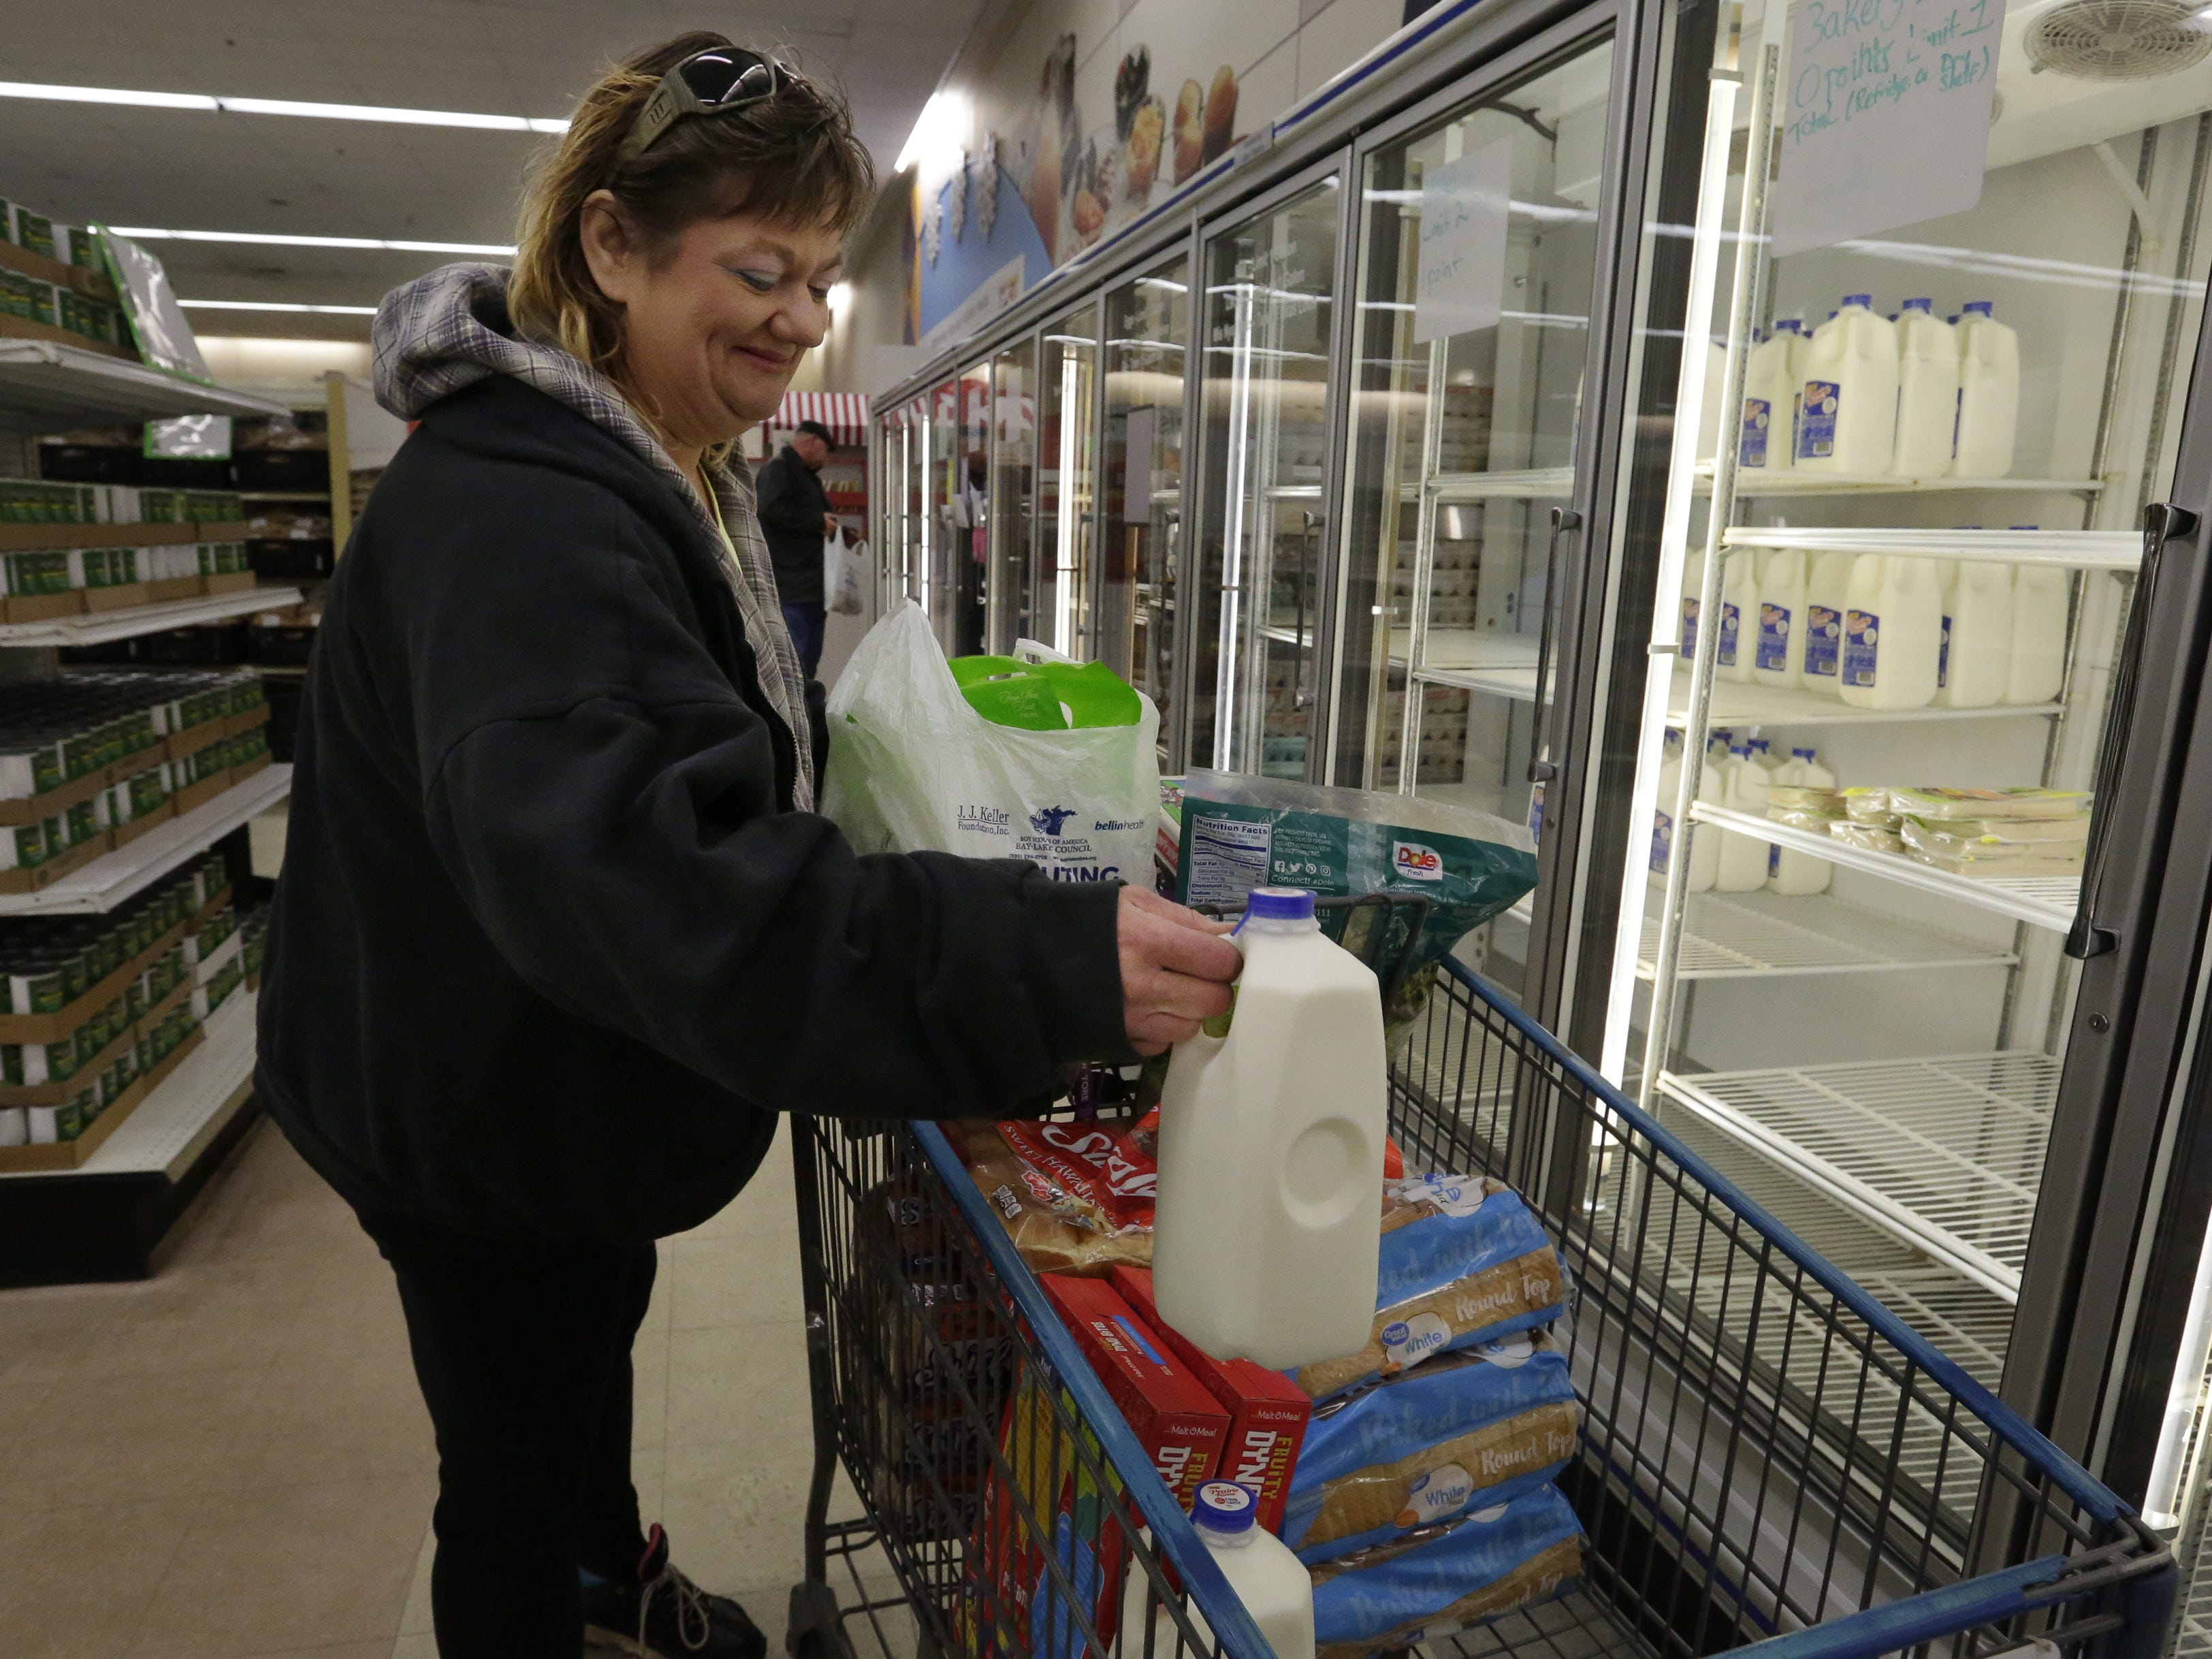 Donnette Collar takes milk from the cooler to put into her cart Thursday, Nov. 1, 2018 at the Oshkosh Area Community Pantry. The pantry has less than a hundred gallons of milk left as part of a shipment from The Emergency Food Assistance Program.